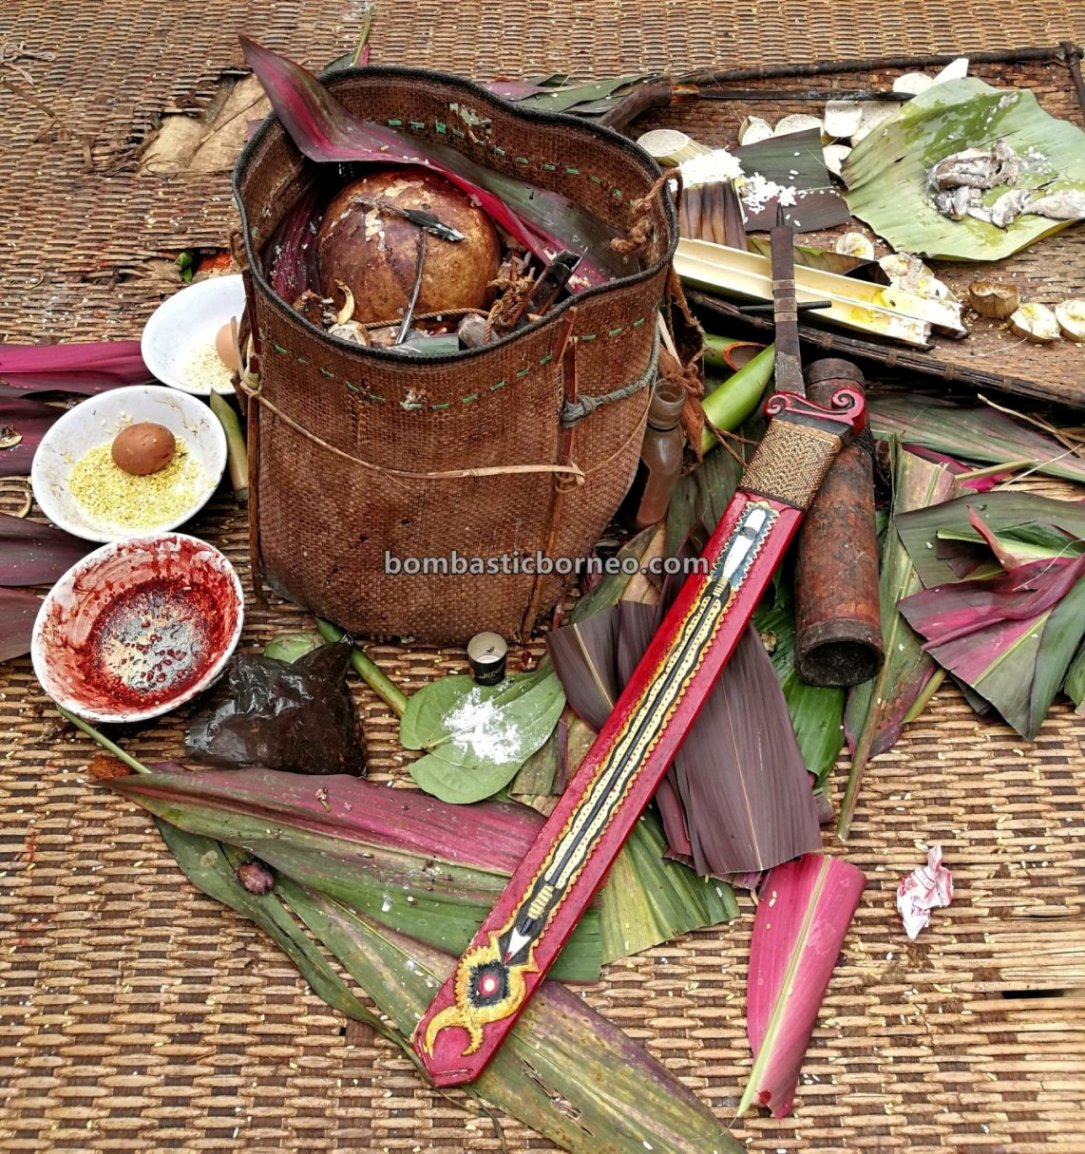 Nyobeng Rambai, Thanksgiving, traditional, village, budaya, Indonesia, Kalimantan Barat, Bengkayang, Dayak Bidayuh, Native, tribal, Tourism, tourist attraction, 跨境婆罗洲游踪, 印尼原住民丰收节, 西加里曼丹达雅文化